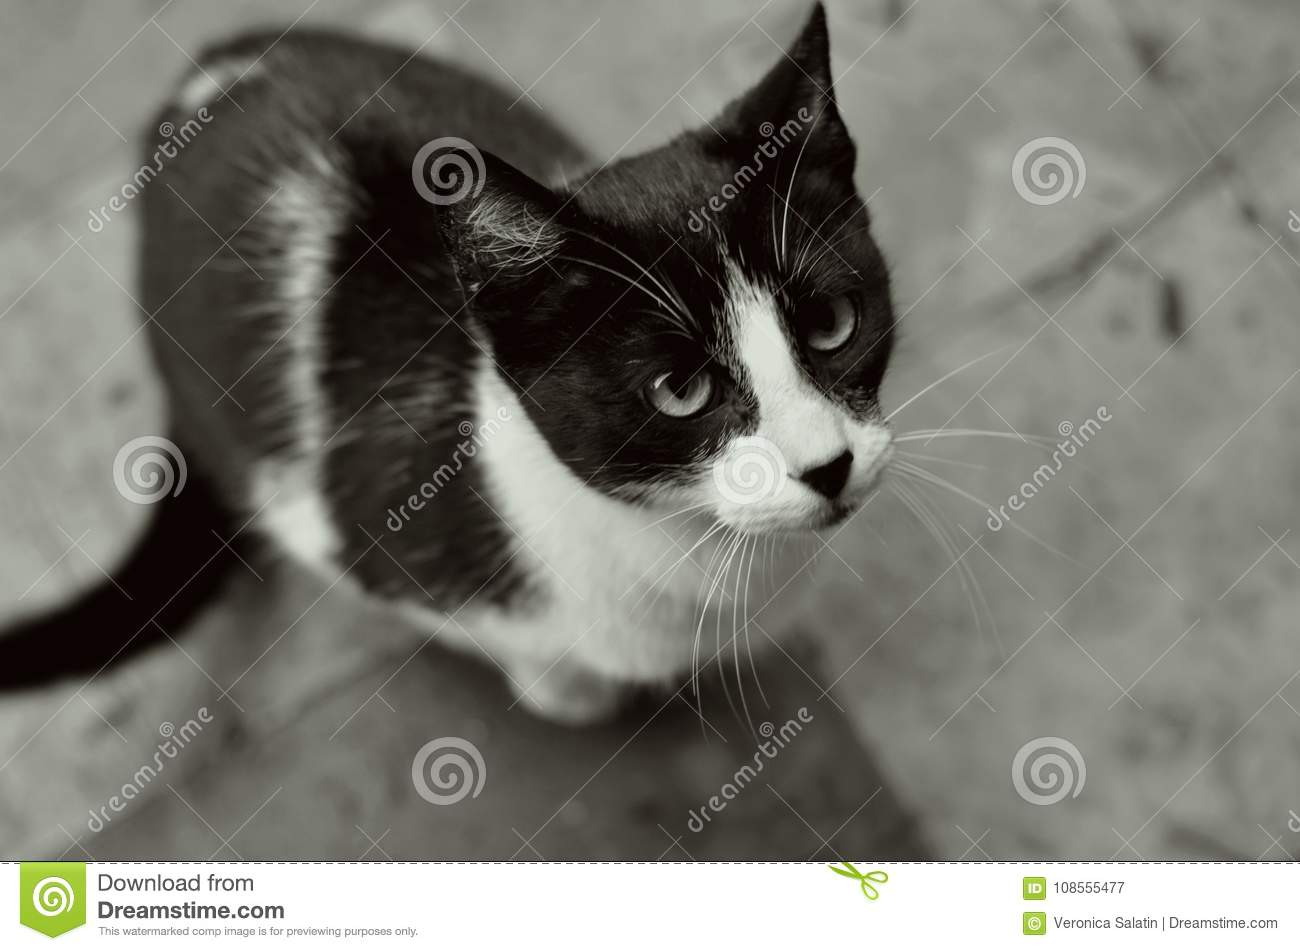 Very pretty cat black and white we love pets beautiful eyes and whiskers hes looking up